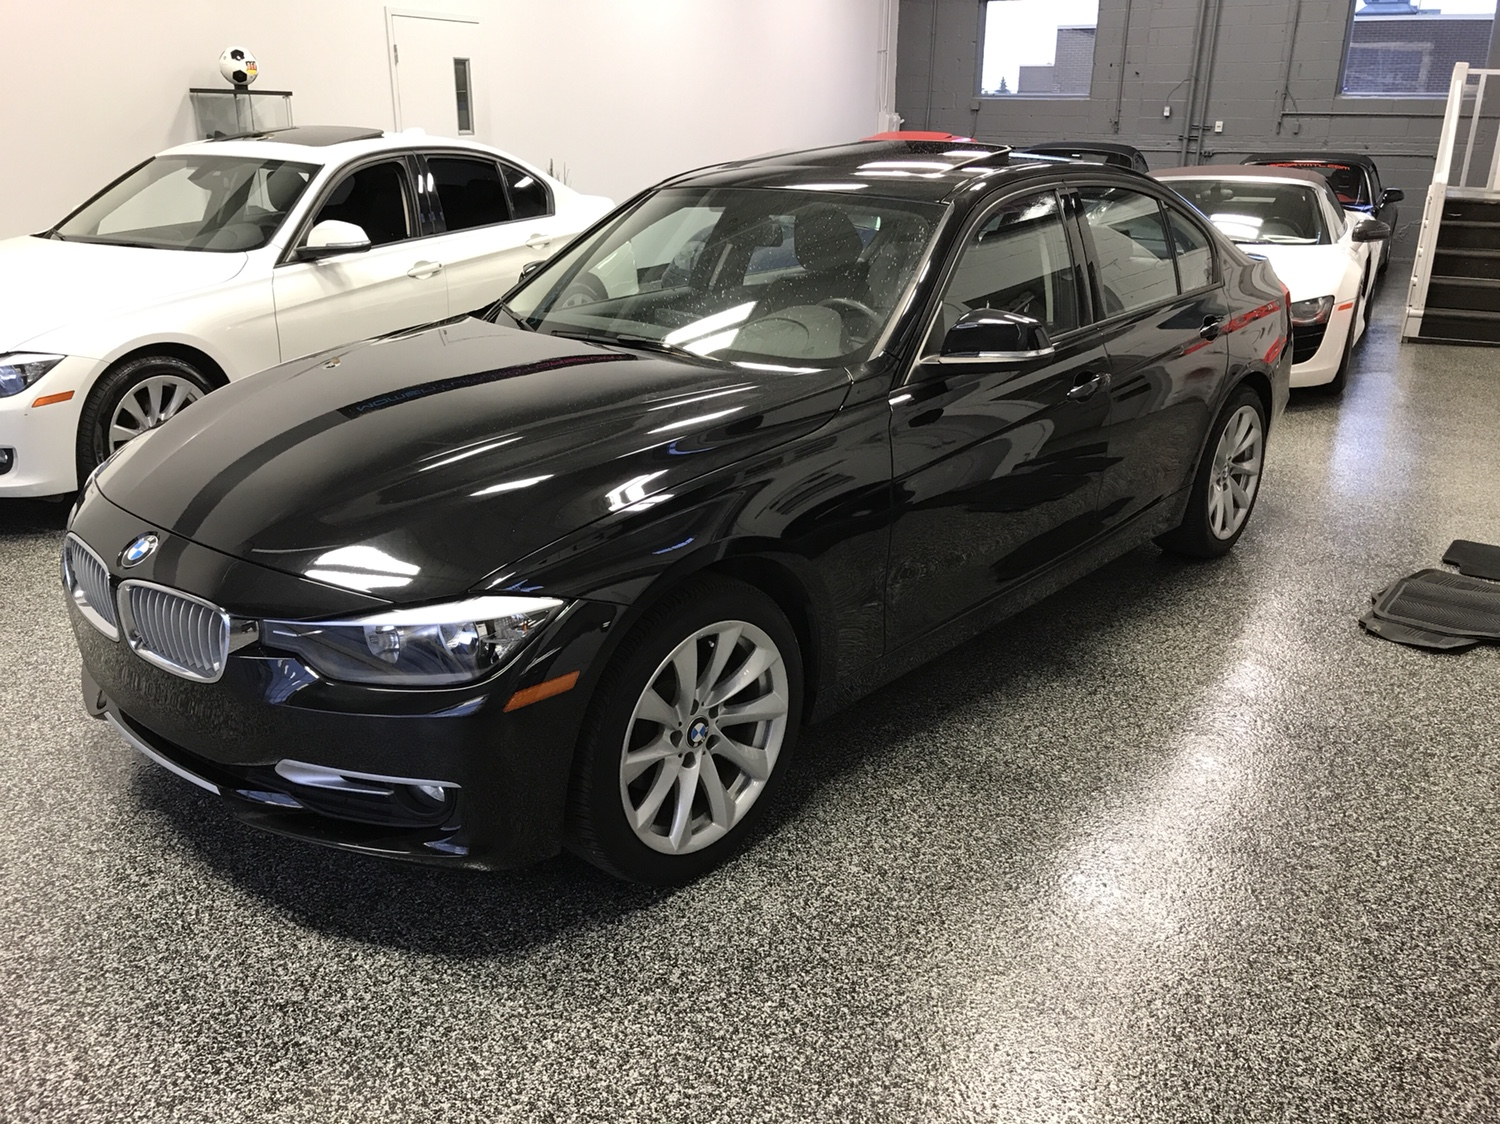 2013 Bmw 320xi Really Low Kms Pics